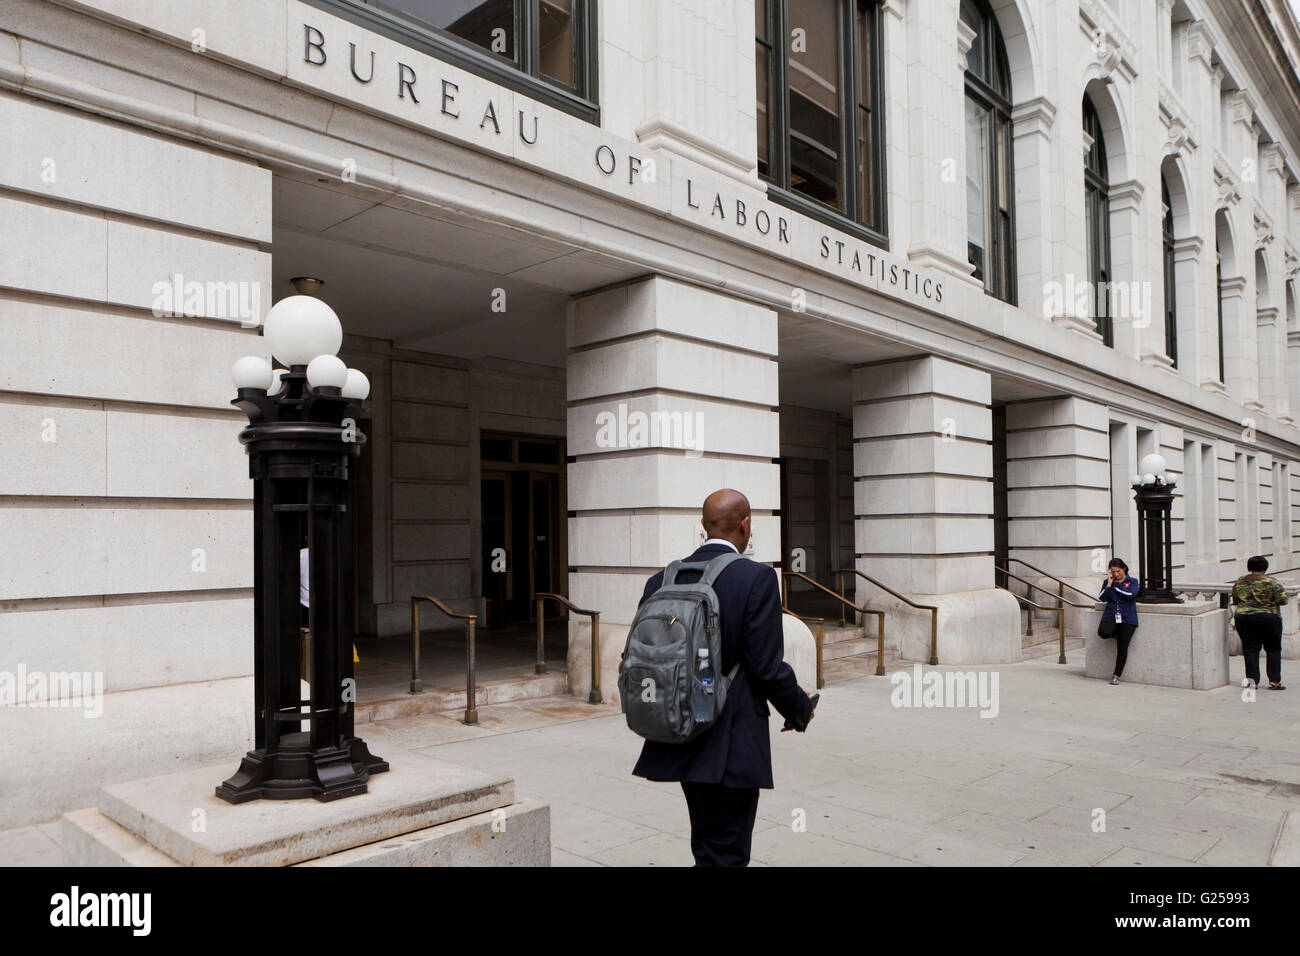 Bureau of labor statistics headquarters washington dc for Bureau of labor statistics